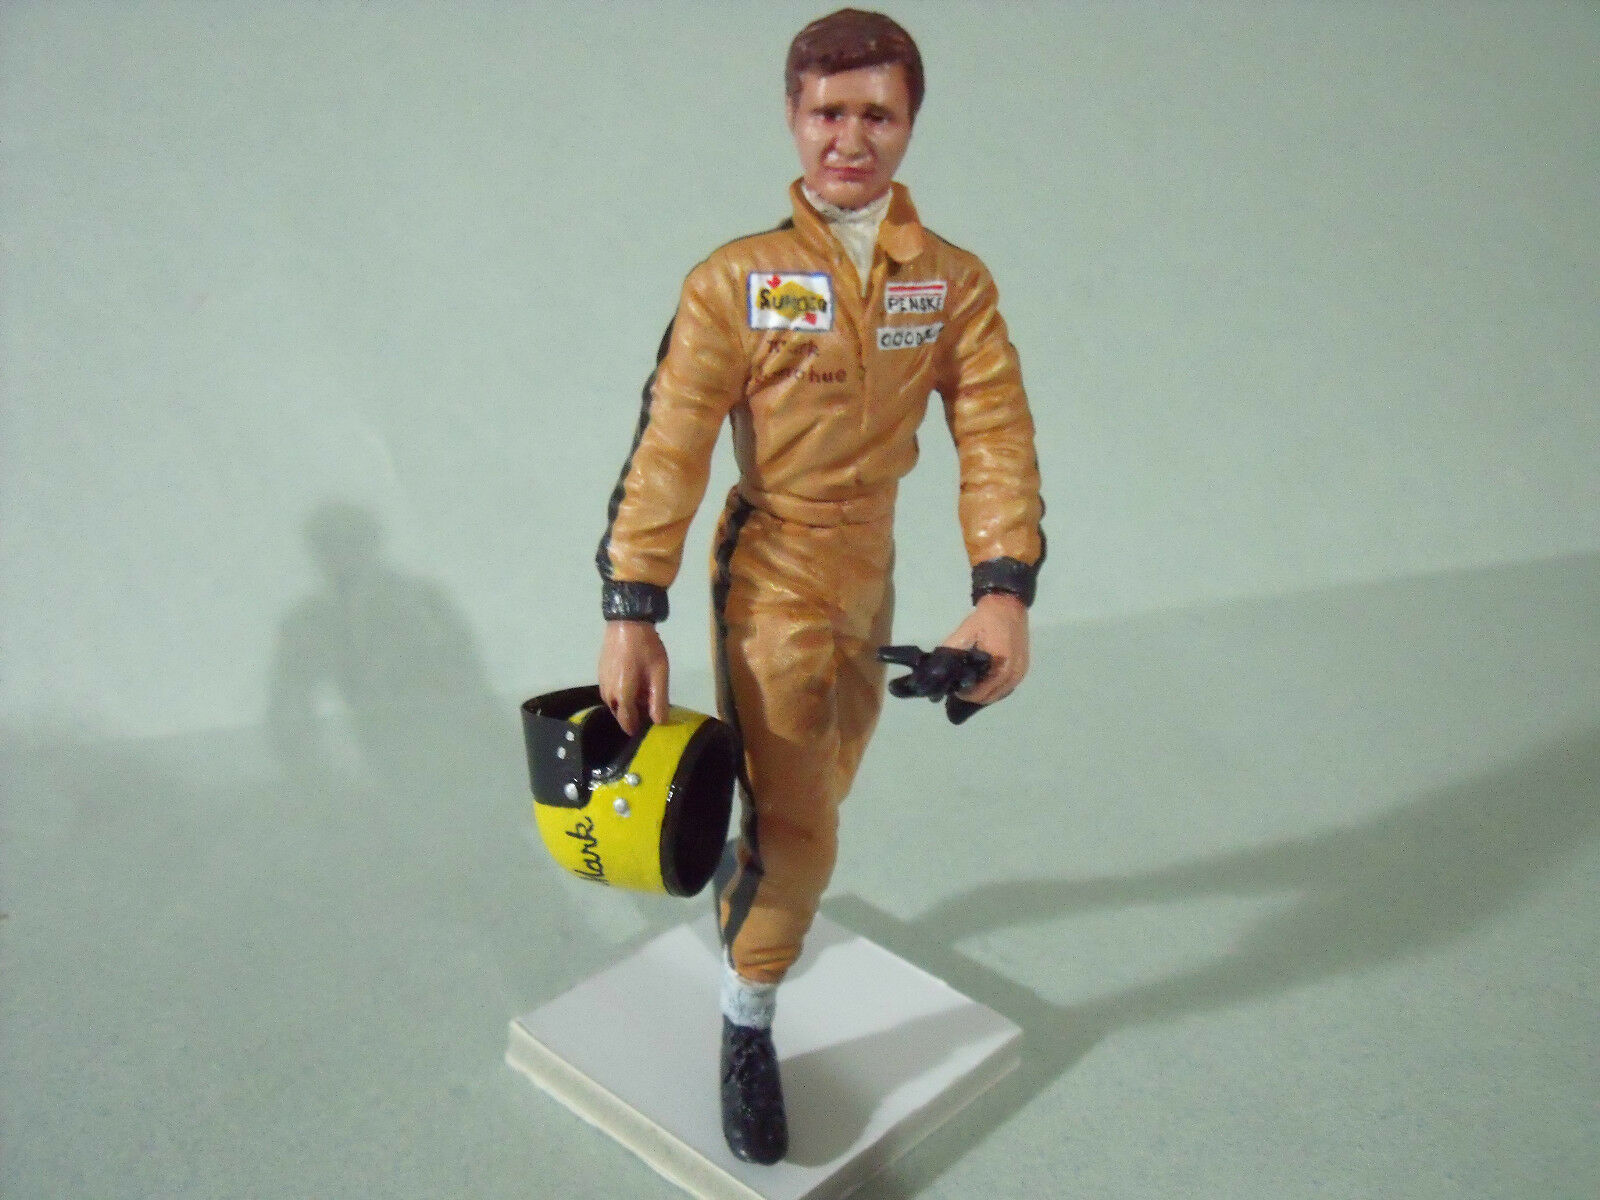 1 18  FIGURE  MARK  DONOHUE  PAINTED  BY   VROOM   FOR  MINICHAMPS  EXOTO  SPARK